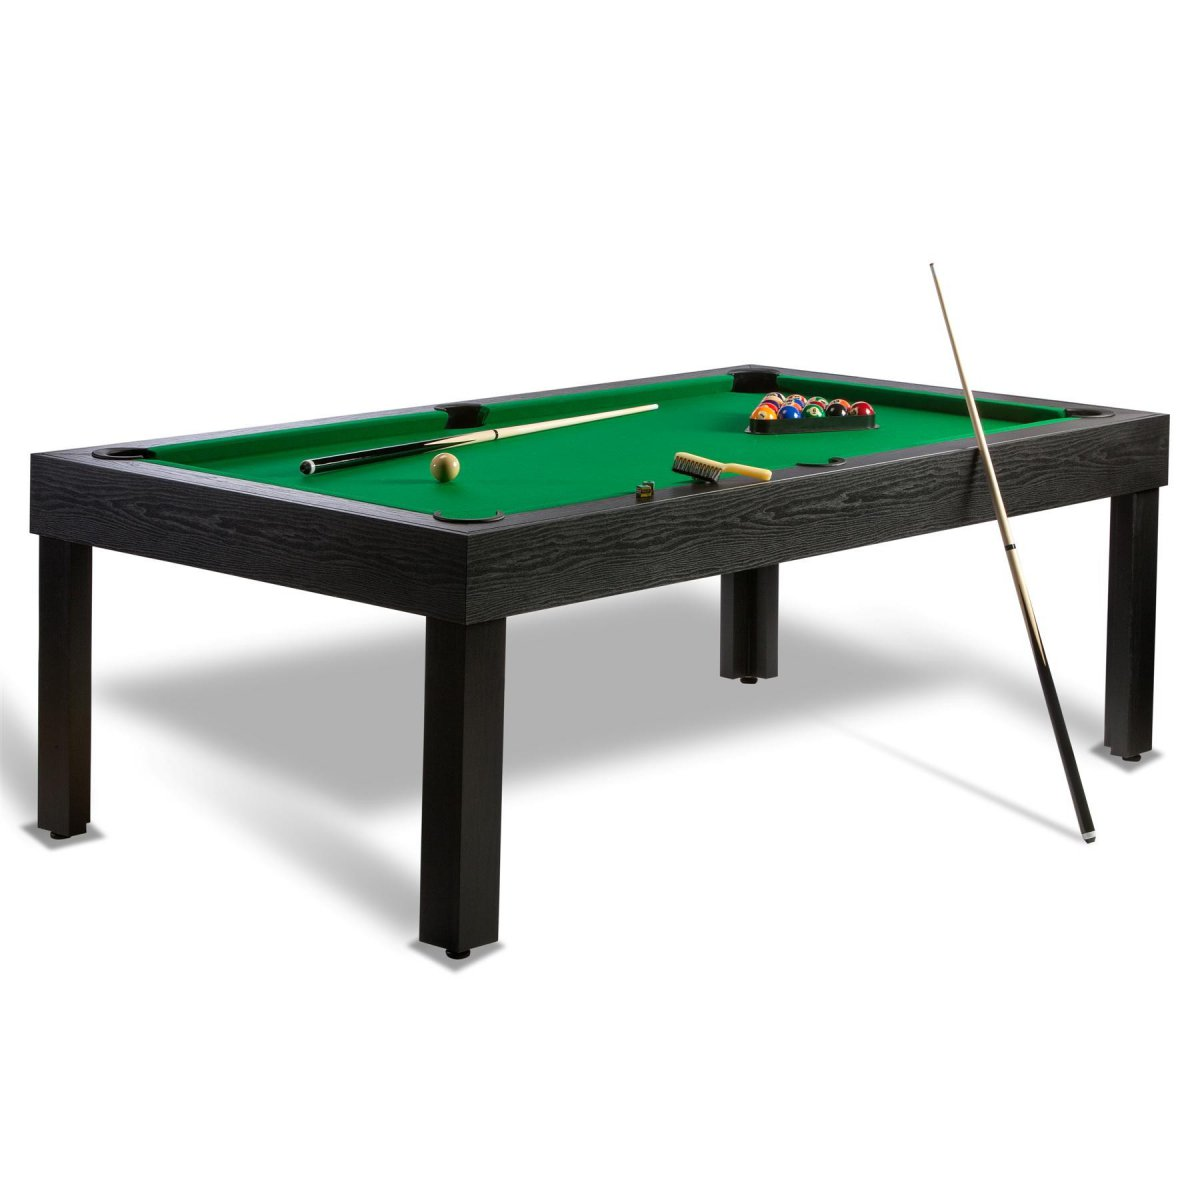 faire son billard soi meme simple rue du commerce cougar billard reverso with faire son billard. Black Bedroom Furniture Sets. Home Design Ideas